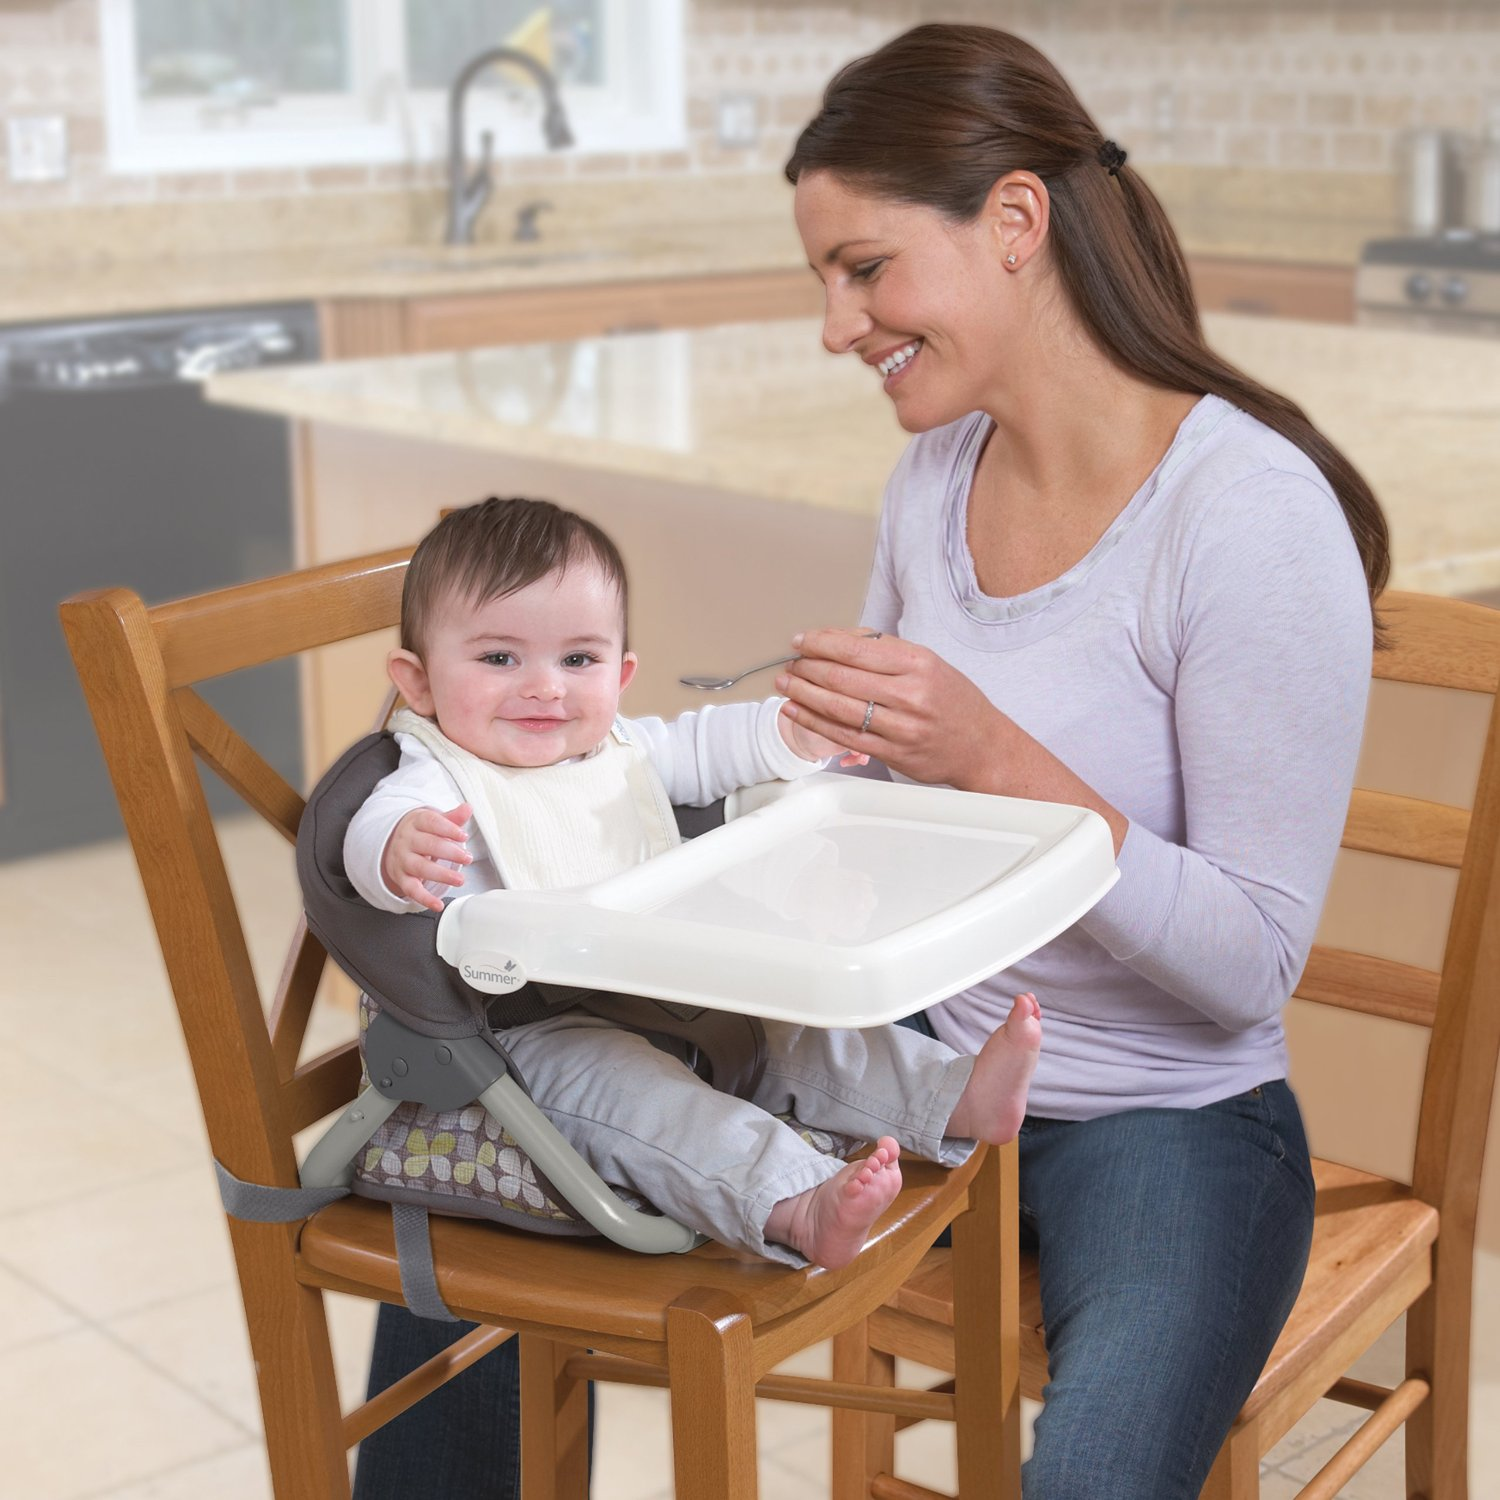 Cheap Baby High Chair Baby High Chair That Attaches To Table A Neat Idea